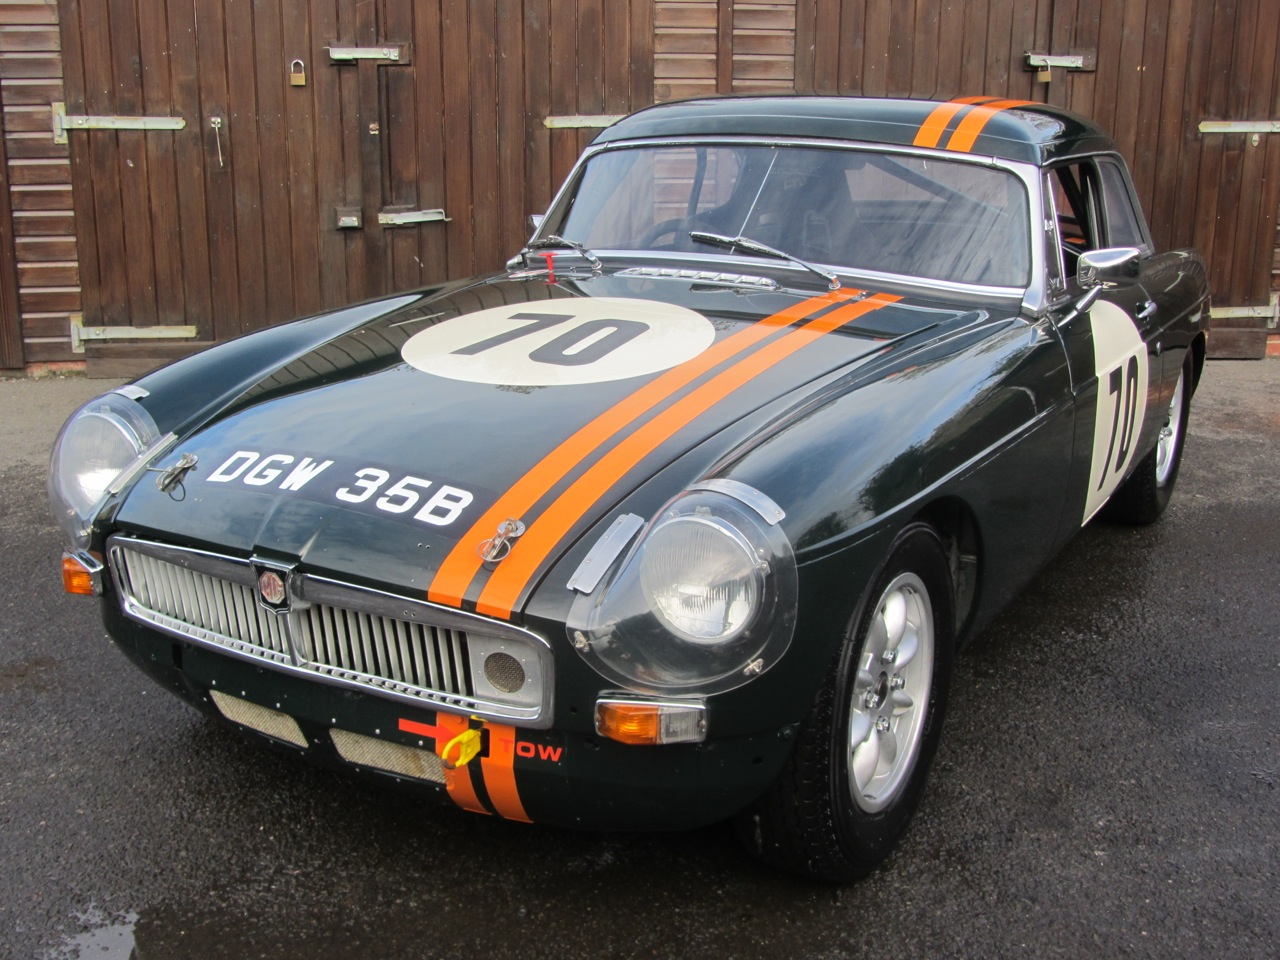 welcome to sussex sports cars sales of classic cars by gerry wadman in lewes. Black Bedroom Furniture Sets. Home Design Ideas